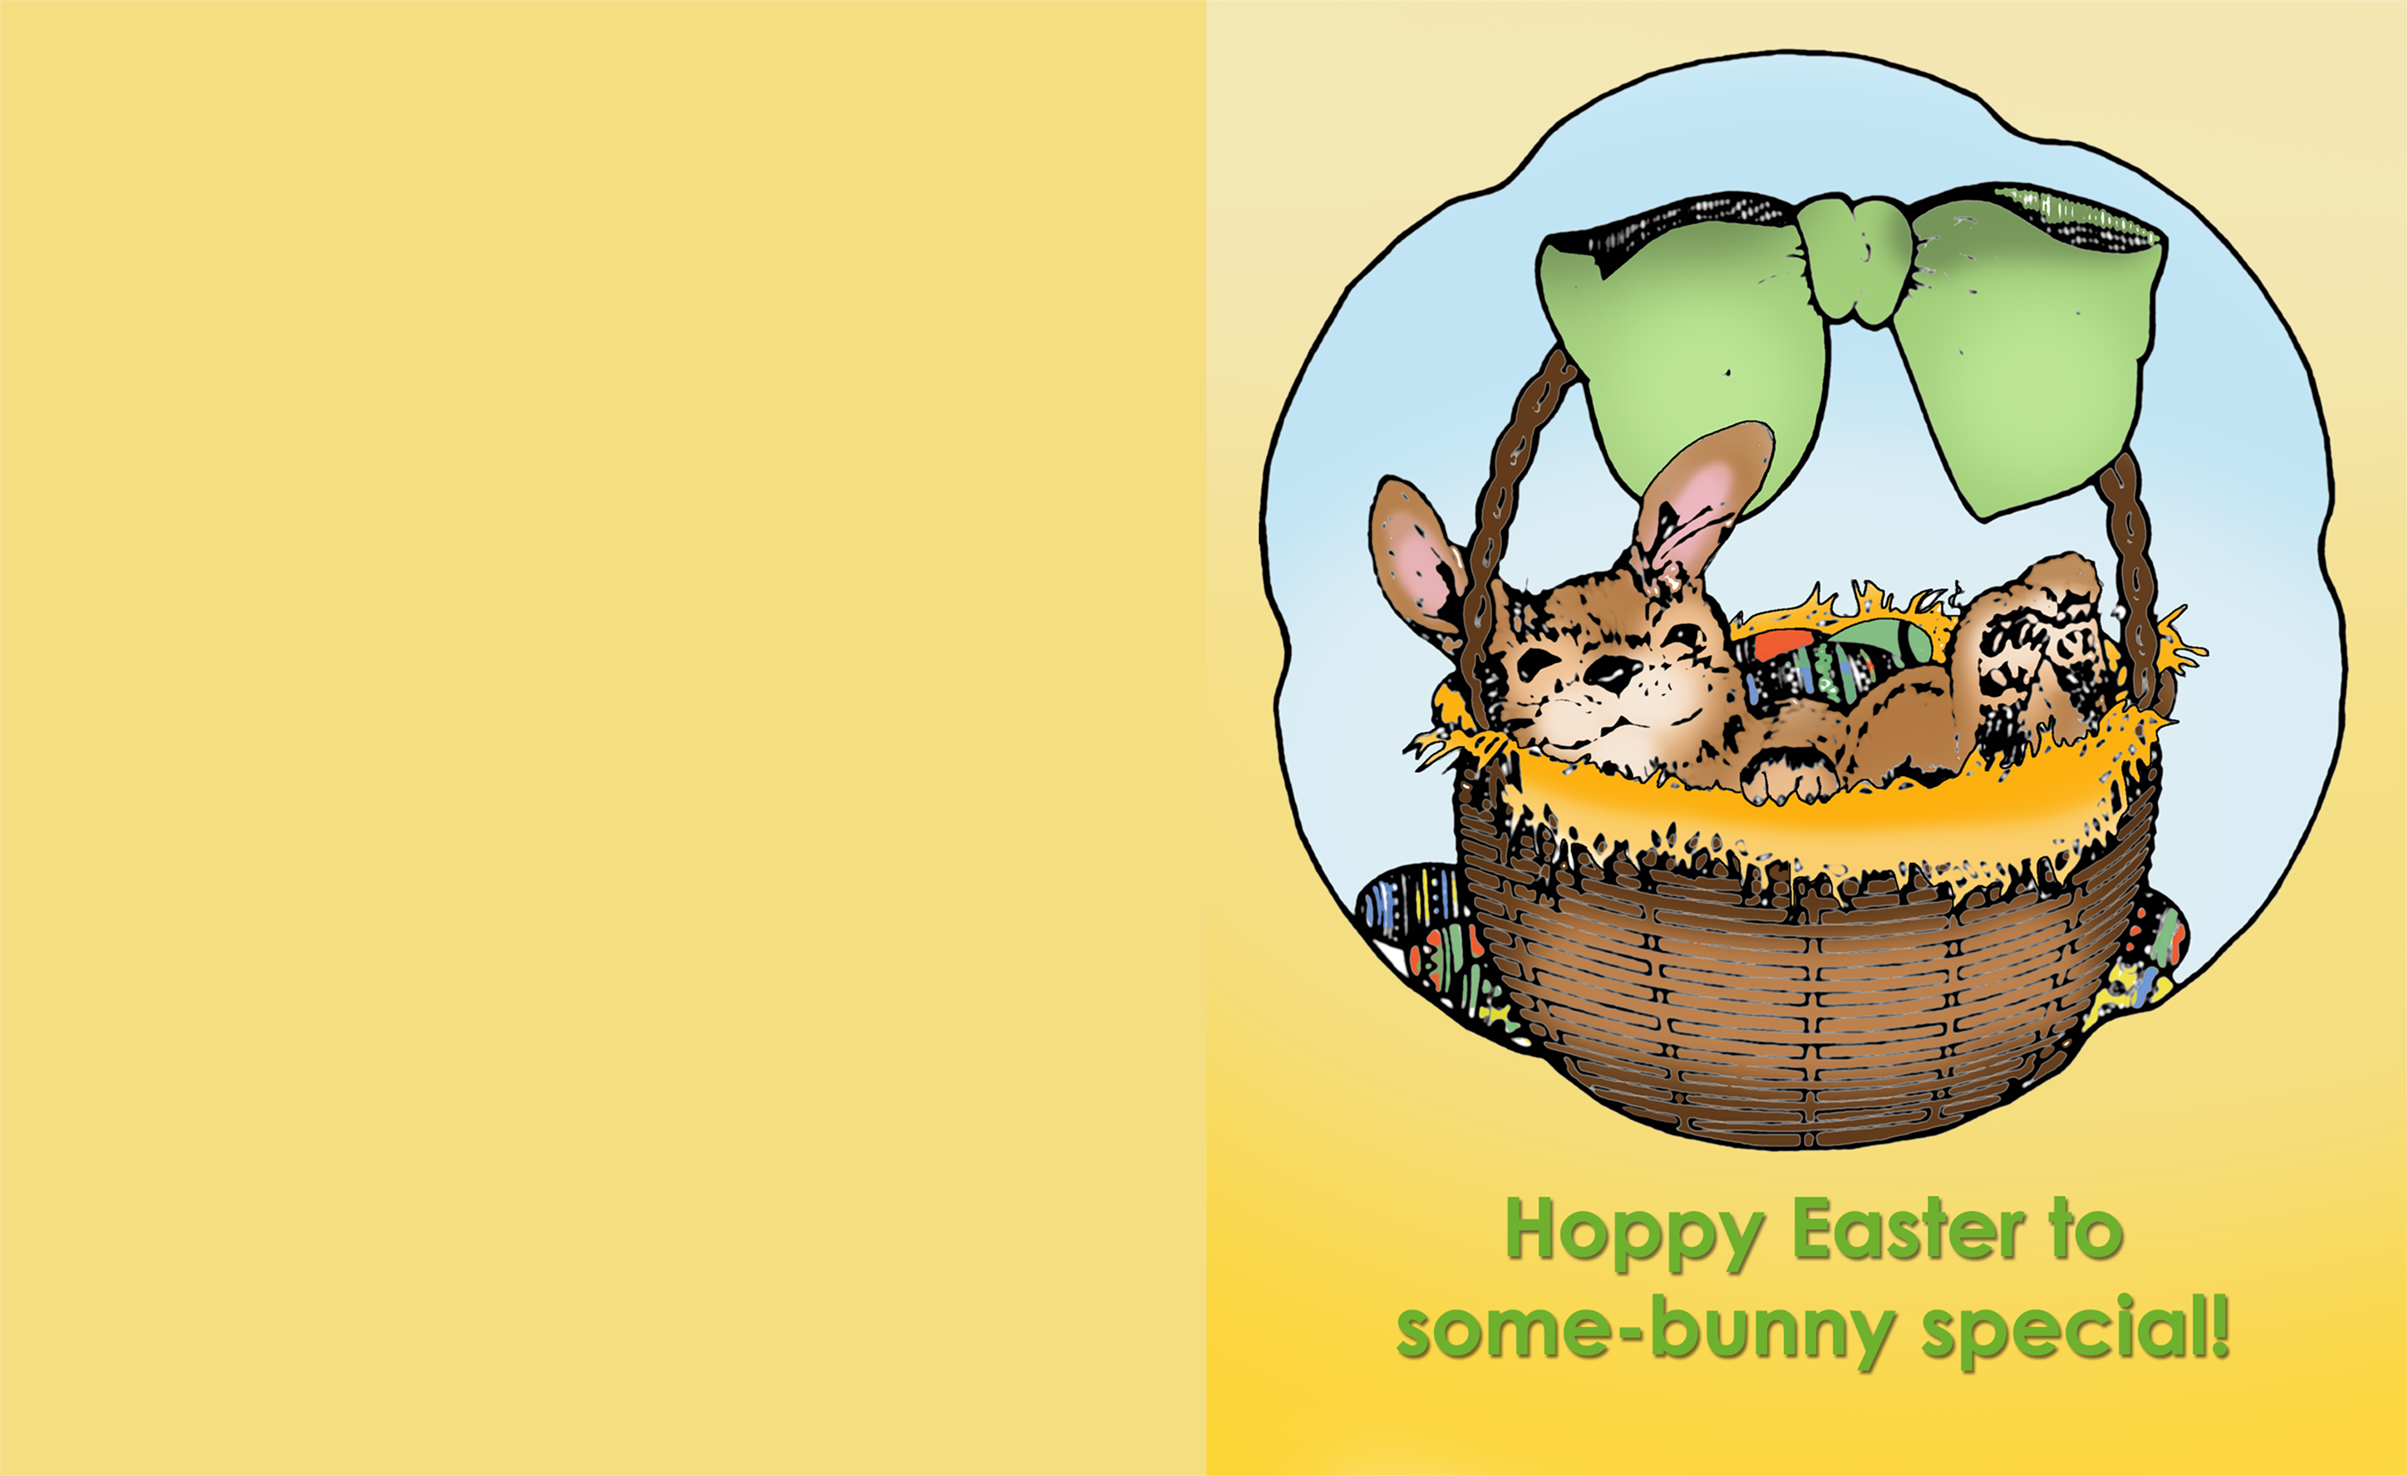 Cute Easter greeting card with a bunny in a basket.